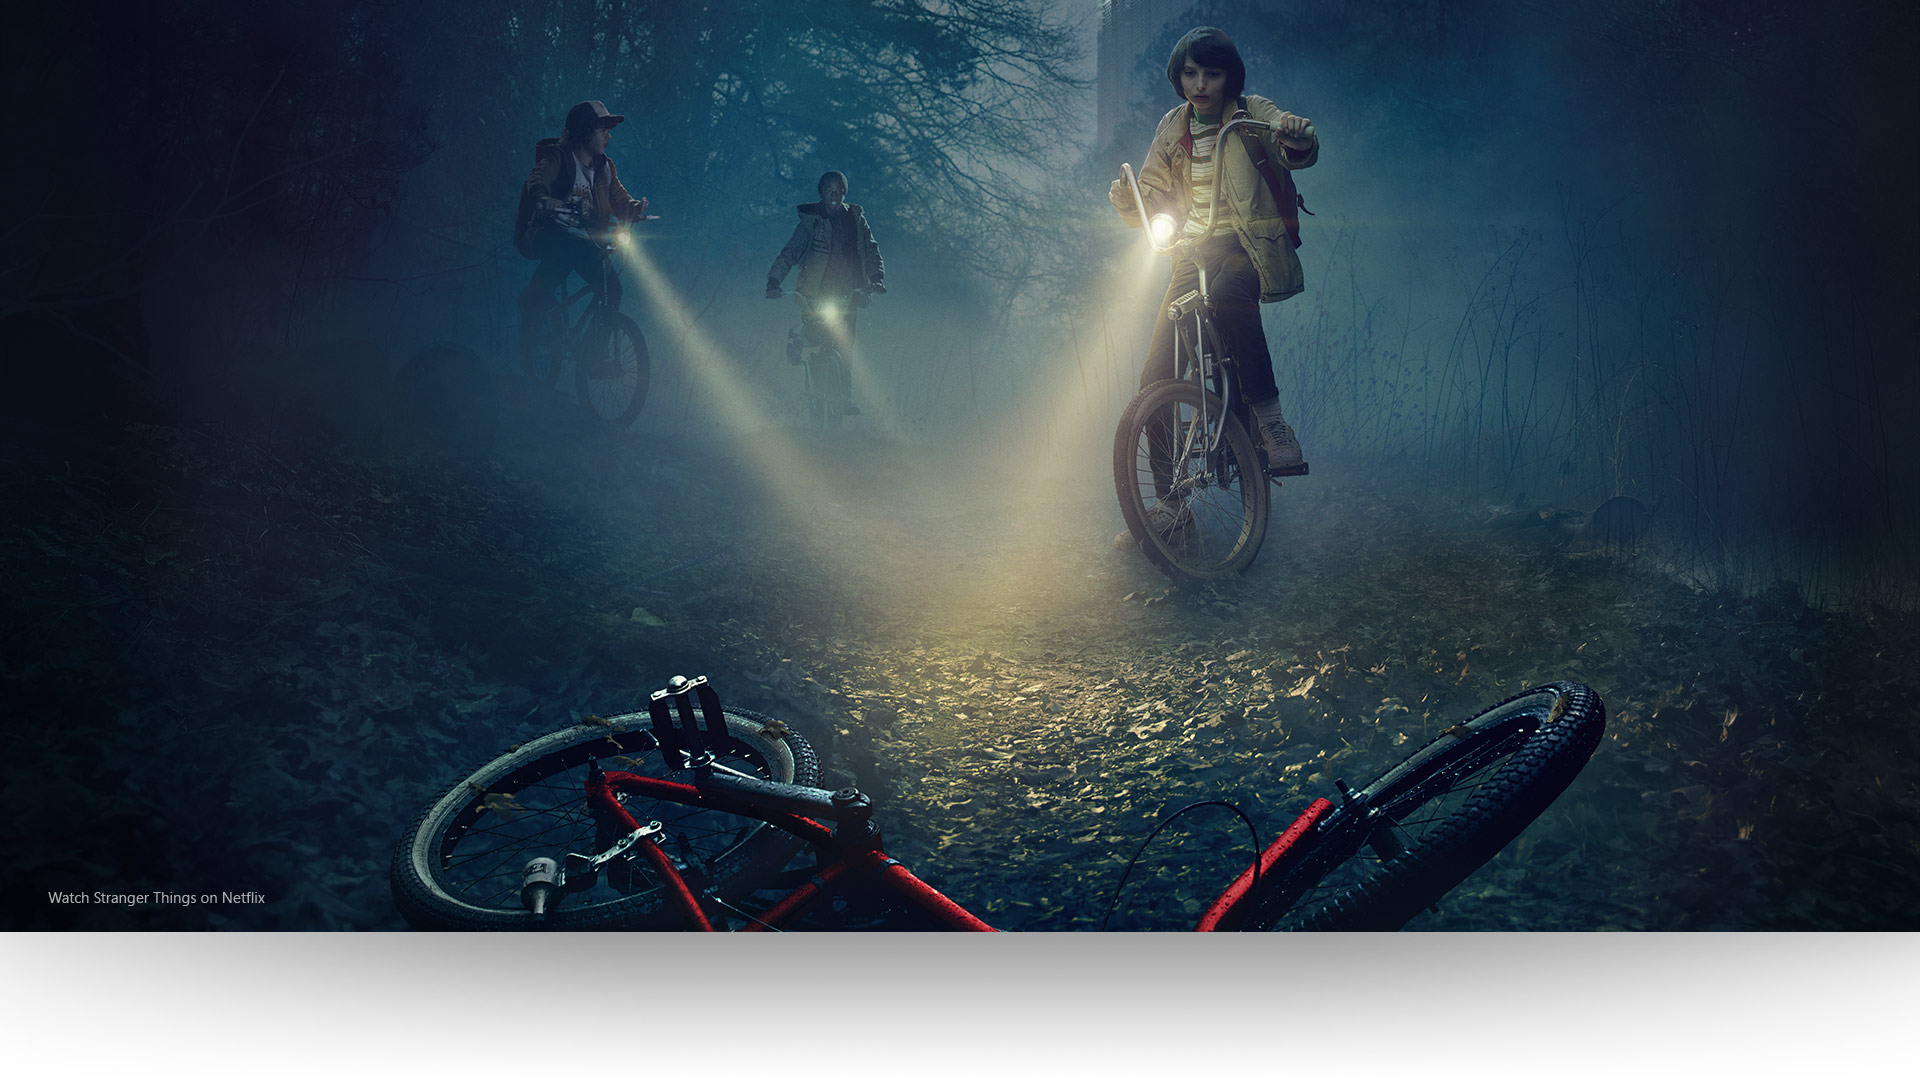 Kids on bikes discover someones lost bike - Watch Stranger Things on Netflix